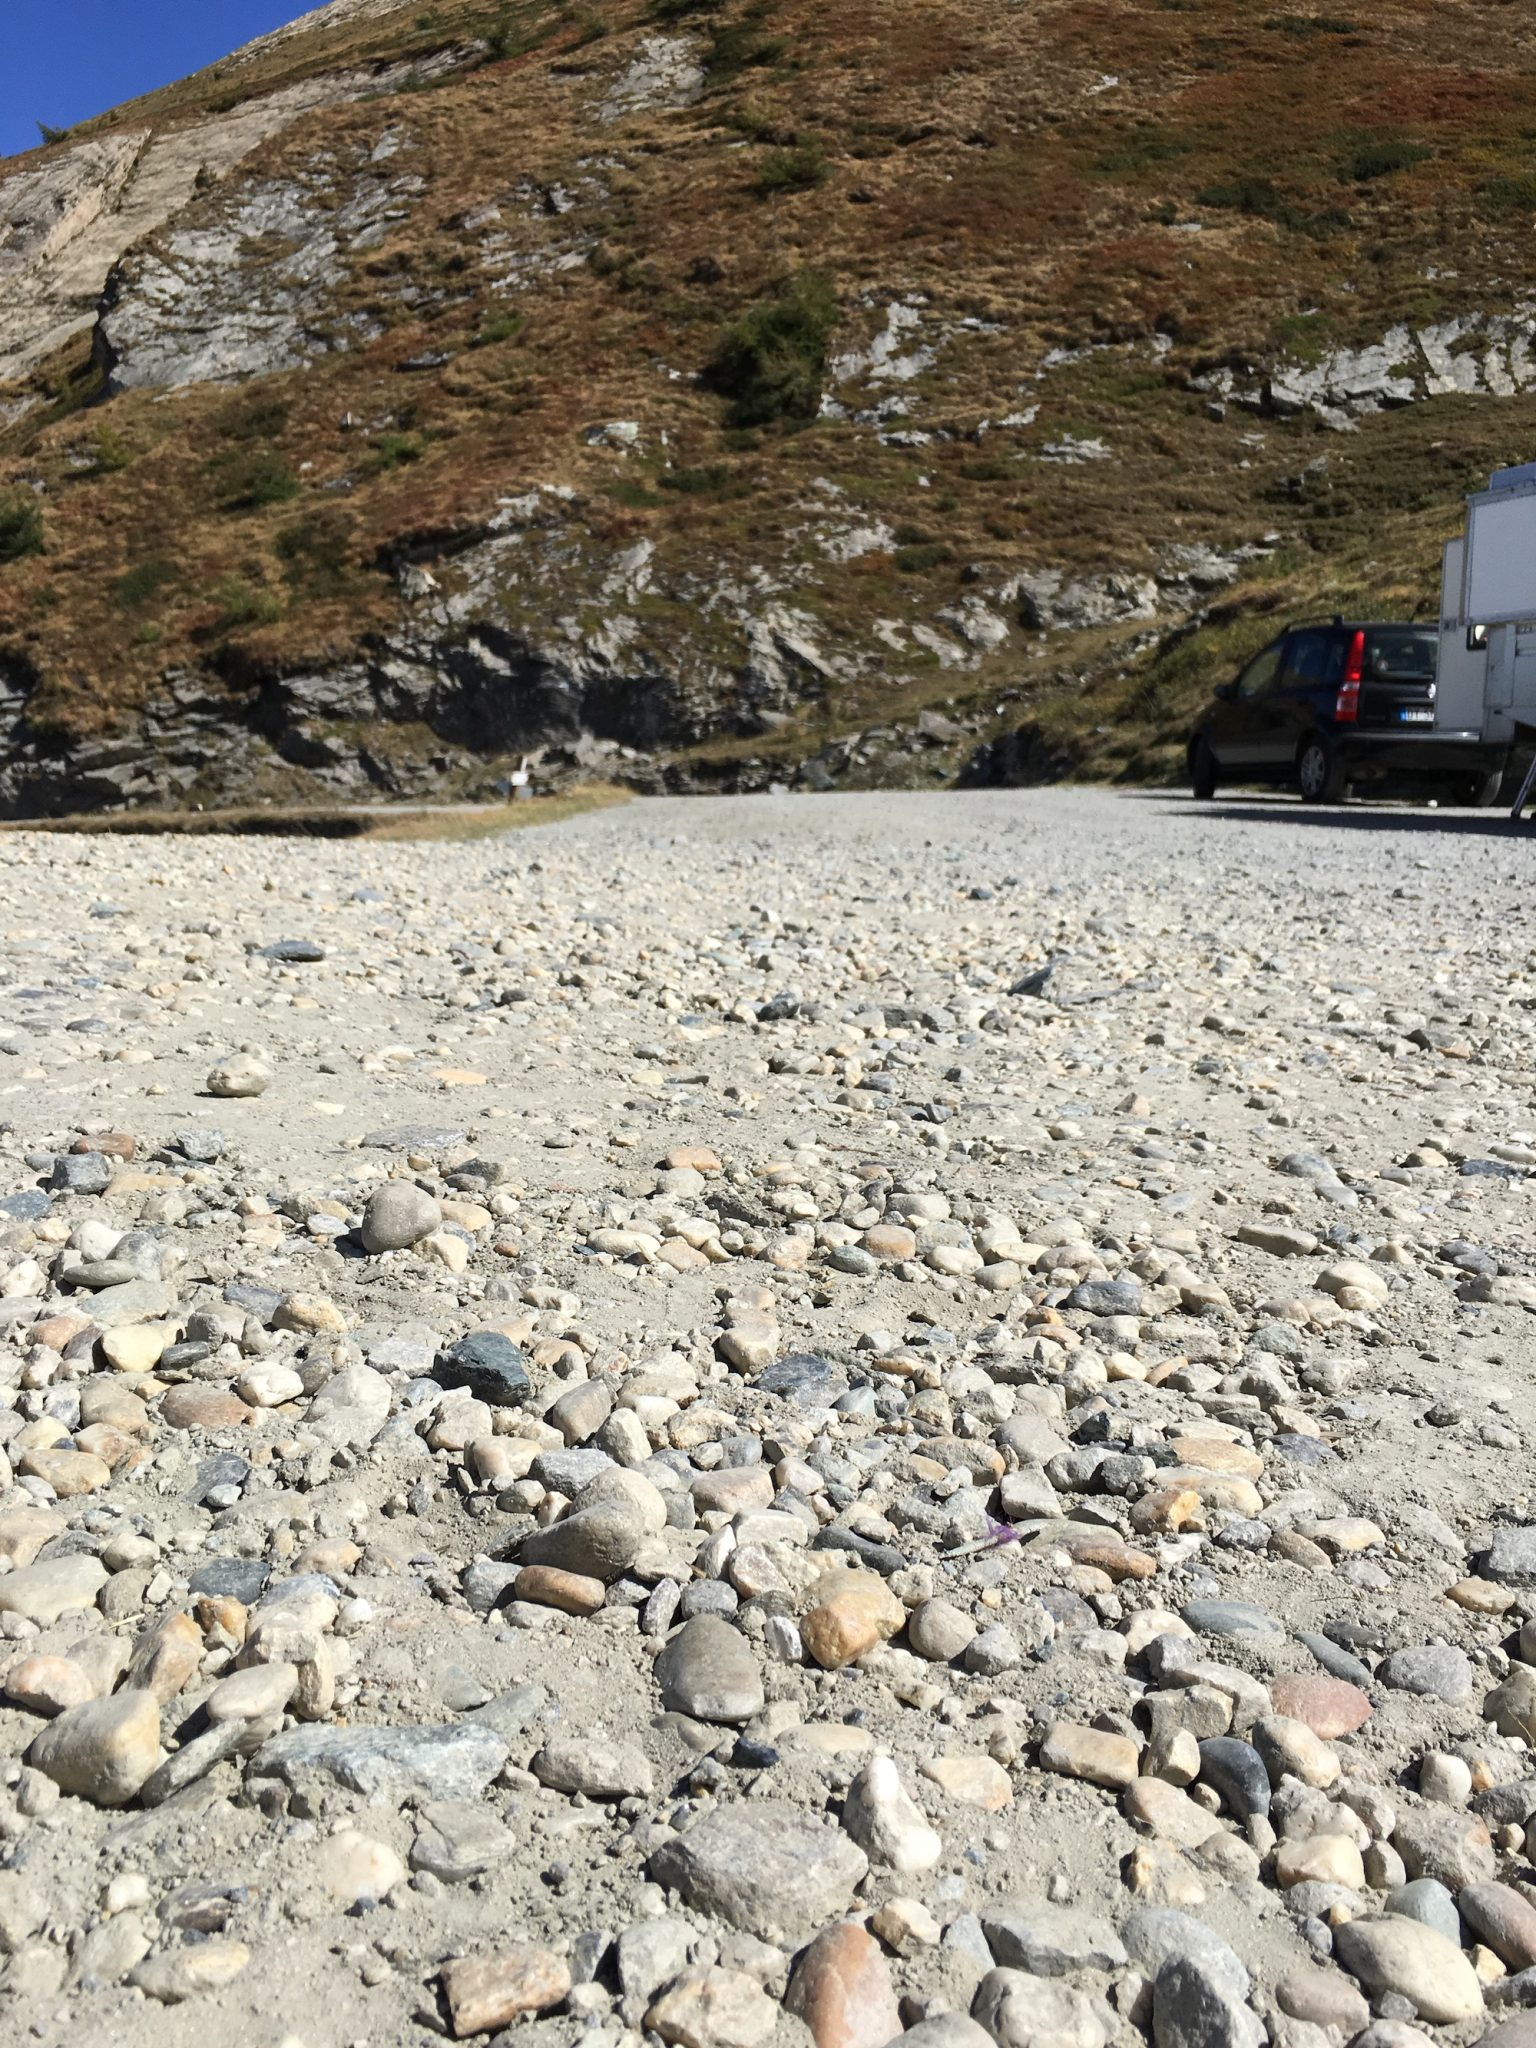 finestreColle delle Finestre - rocks and dirt